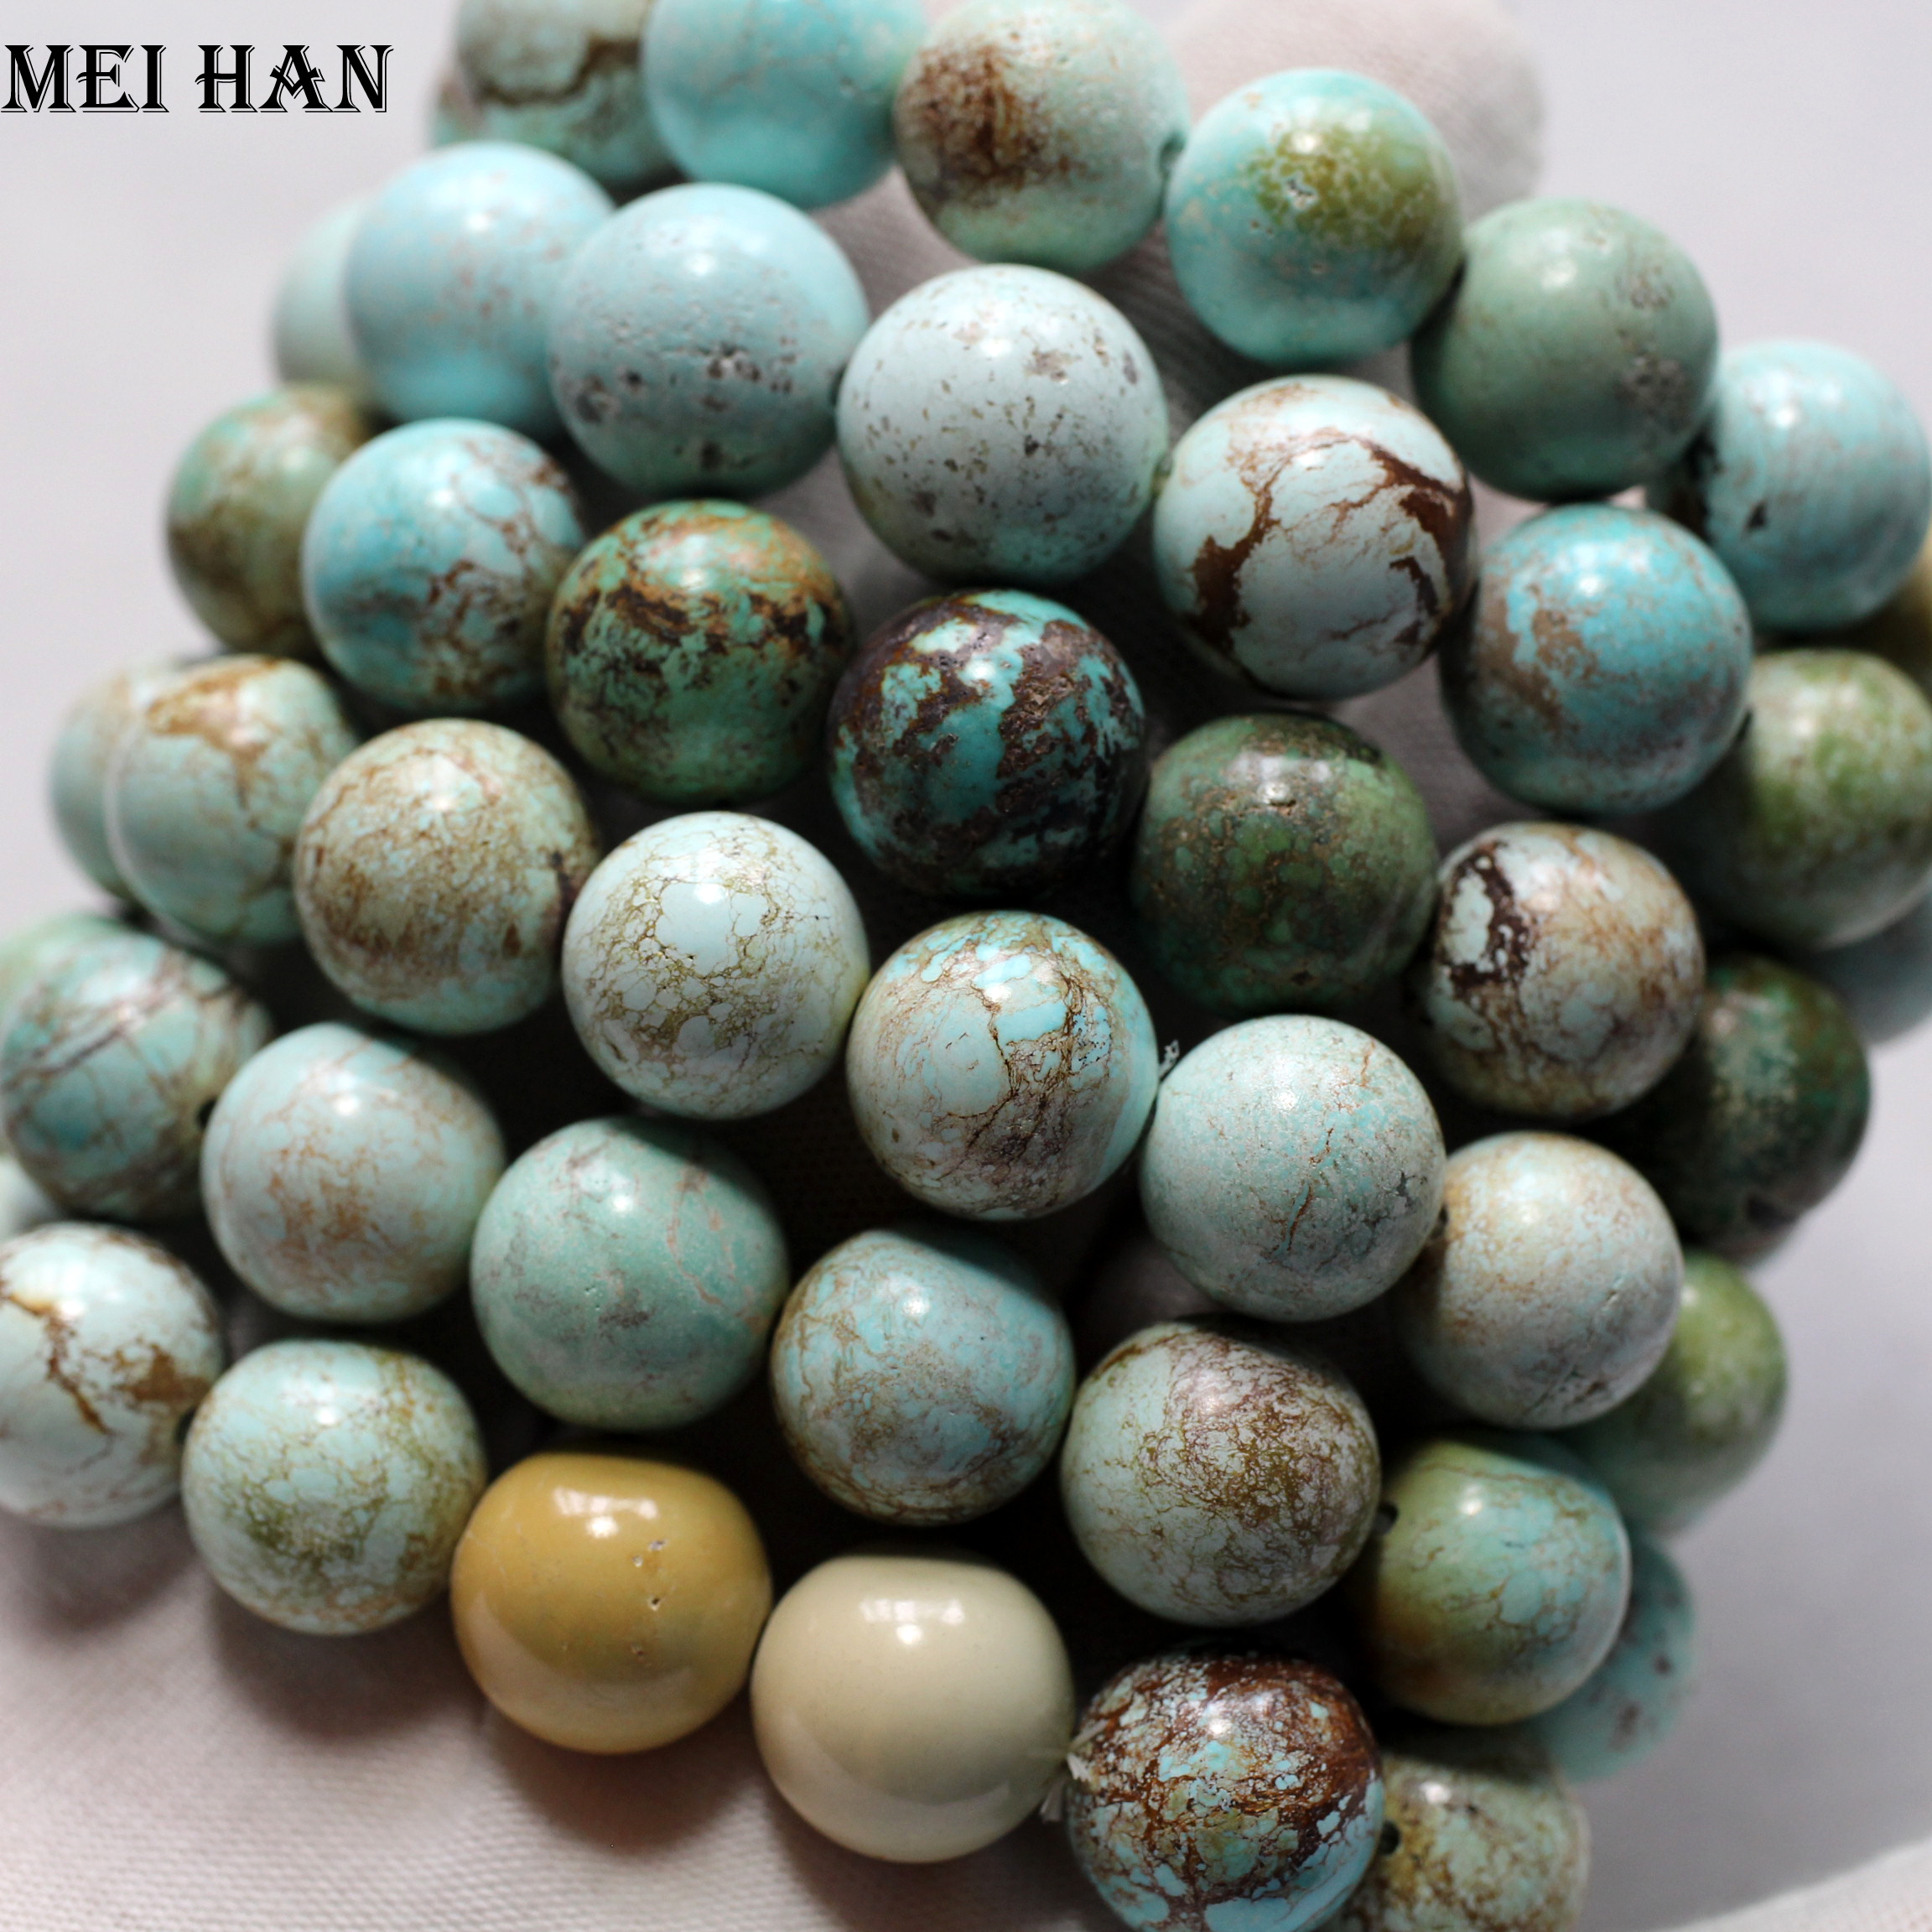 Meihan Free shipping 13 13 5mm 14 beads 37g set rare Natural Hubei Turquoisee untreated ore